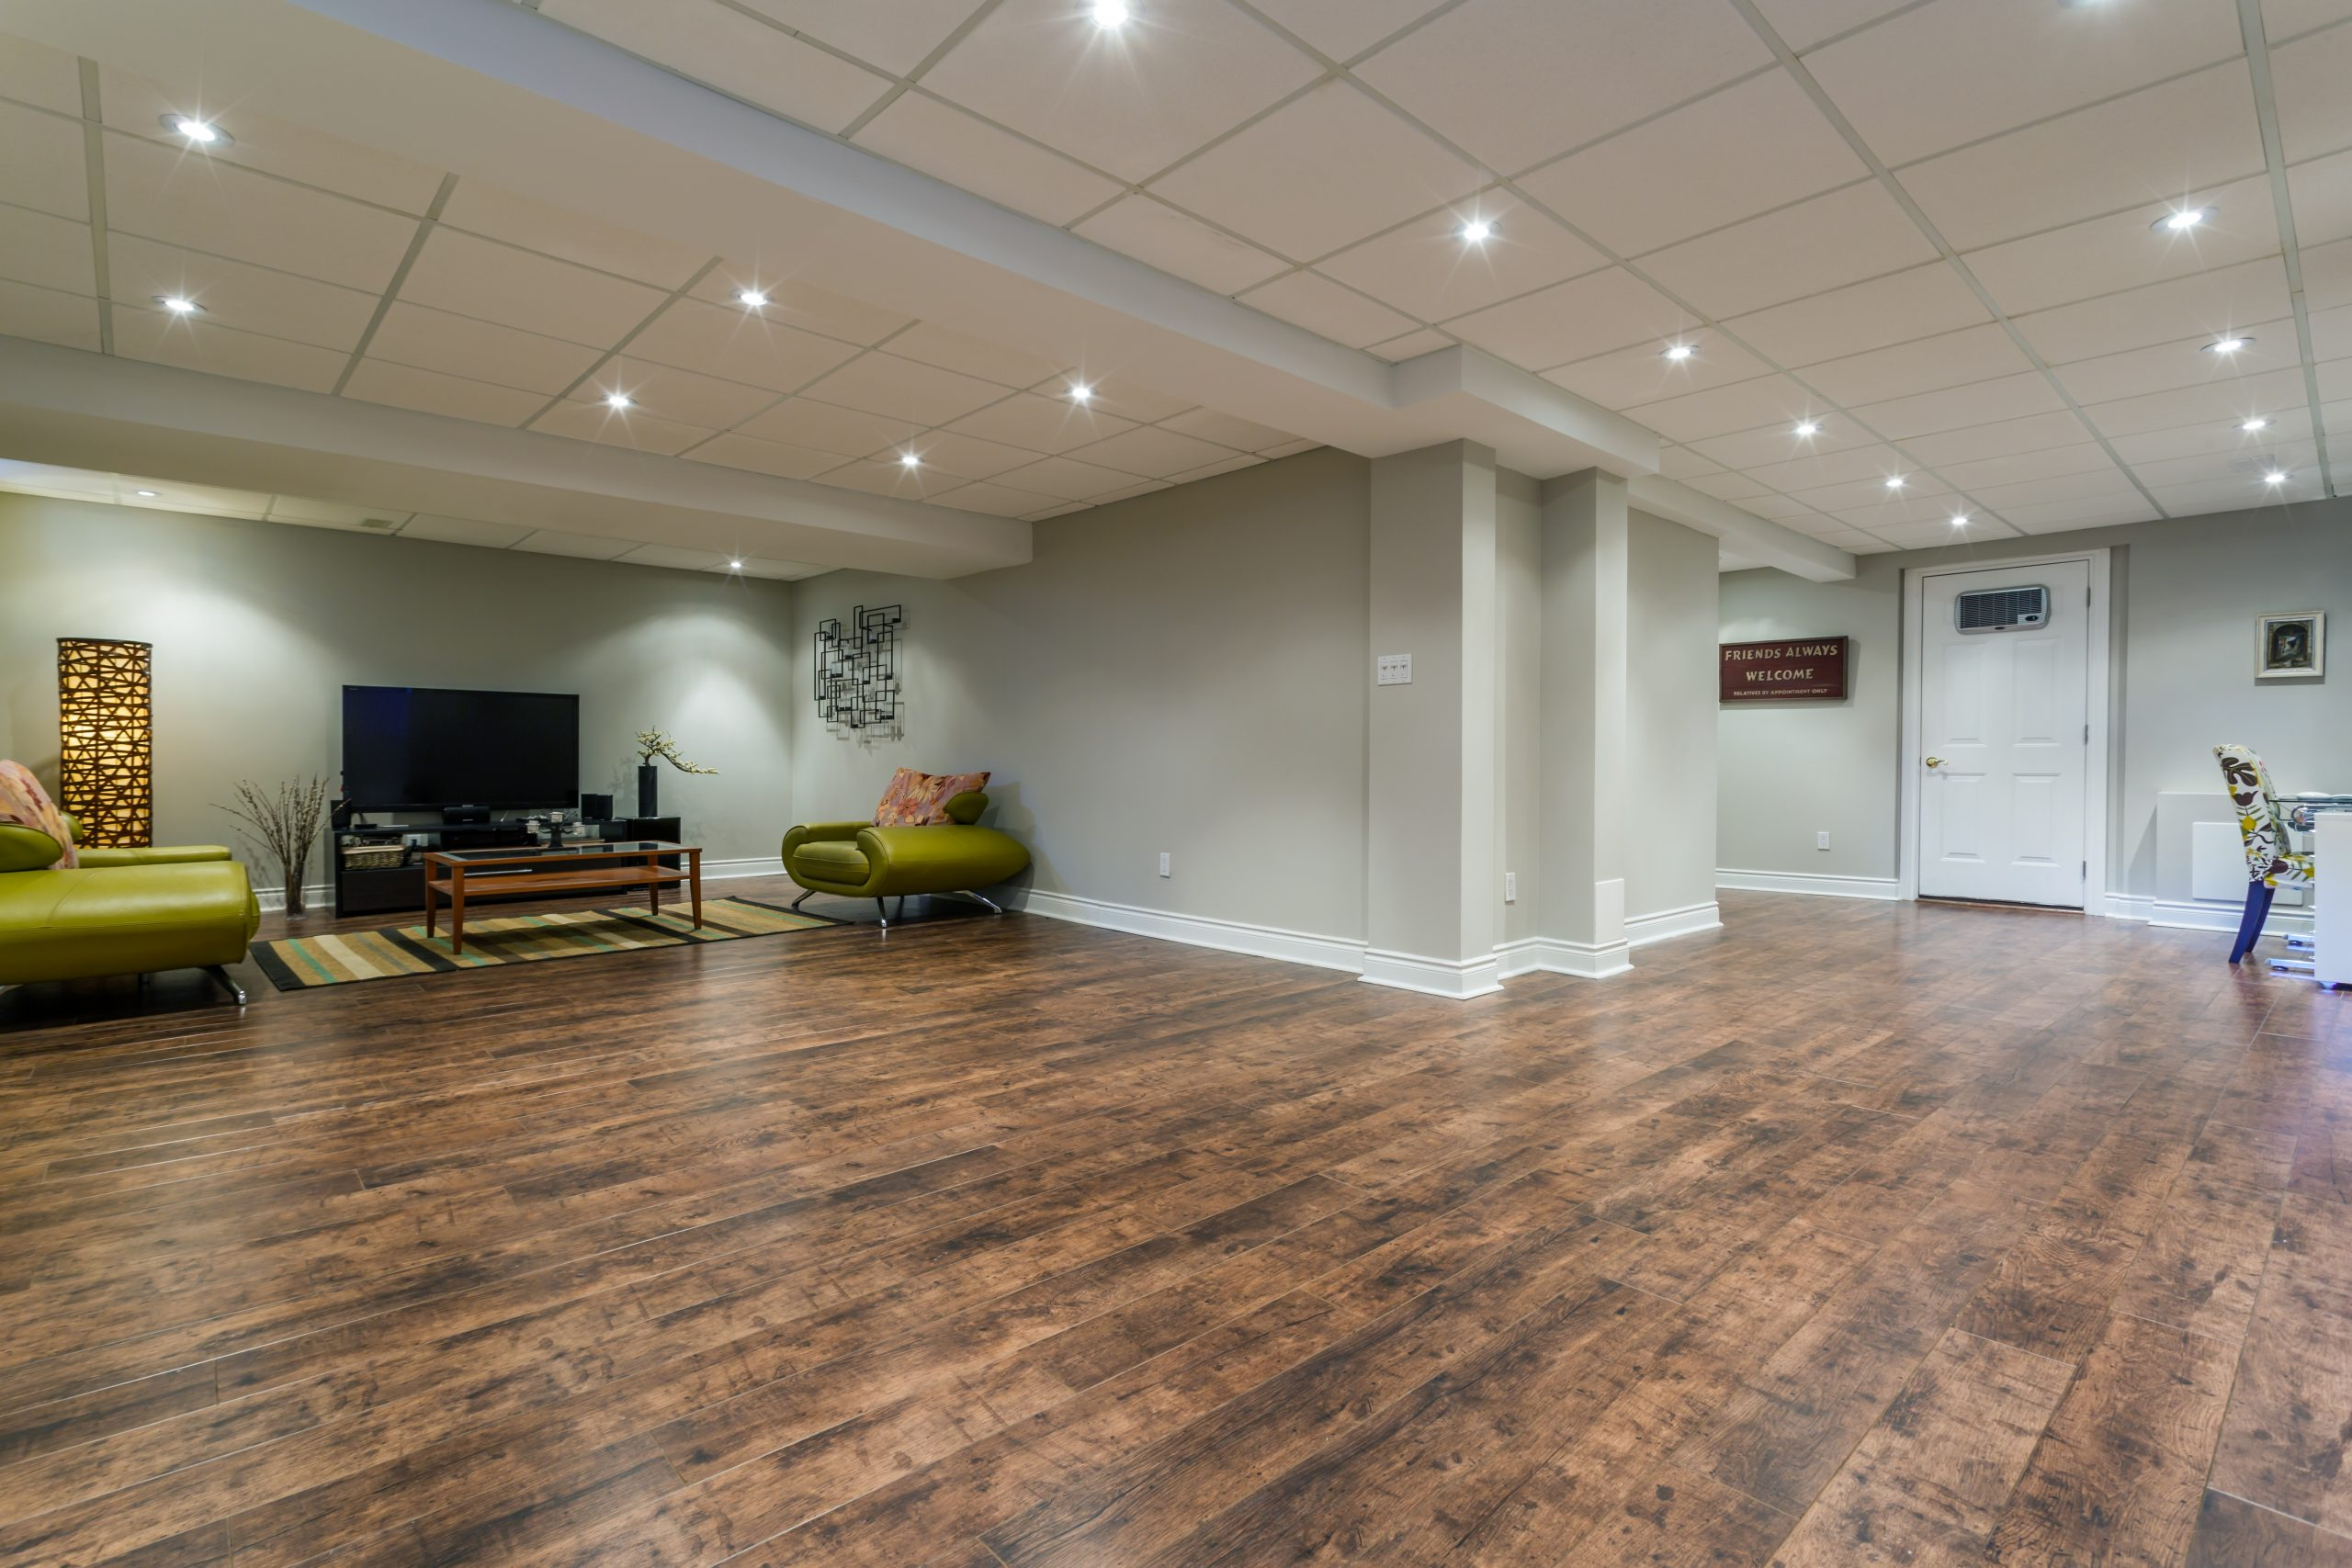 Best Underlay For Laminate Flooring, Can You Put Laminate Flooring Over Cement